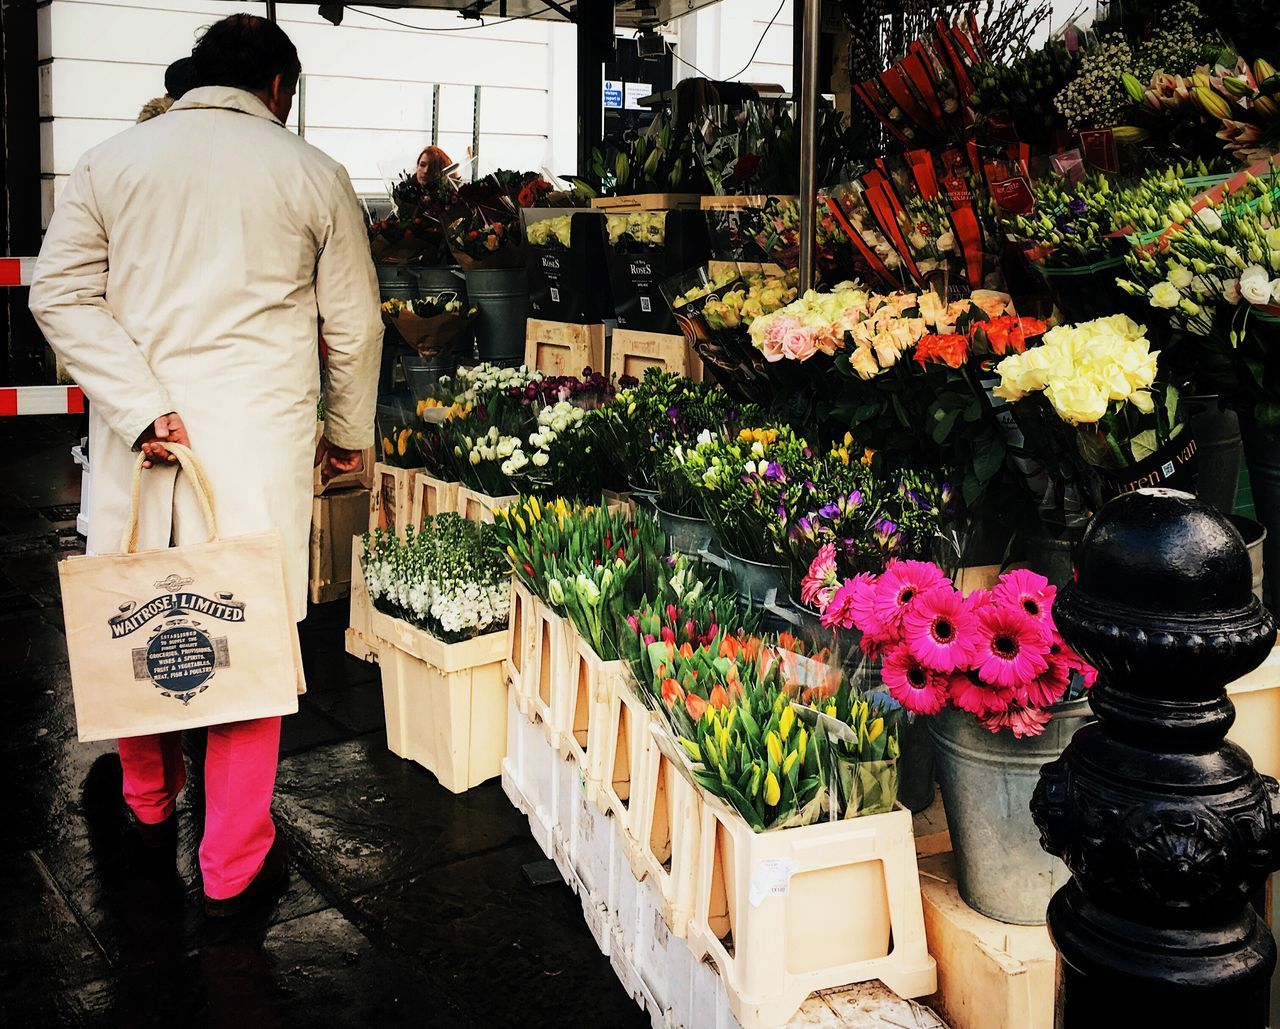 Matching colors Retail  Variation Choice Store Rear View Growth Flower Indoors  Men Freshness Day Nature Adults Only Adult People Pink Streetphotography Flower Stall Flower Vendor London London Streets Shop Commerce